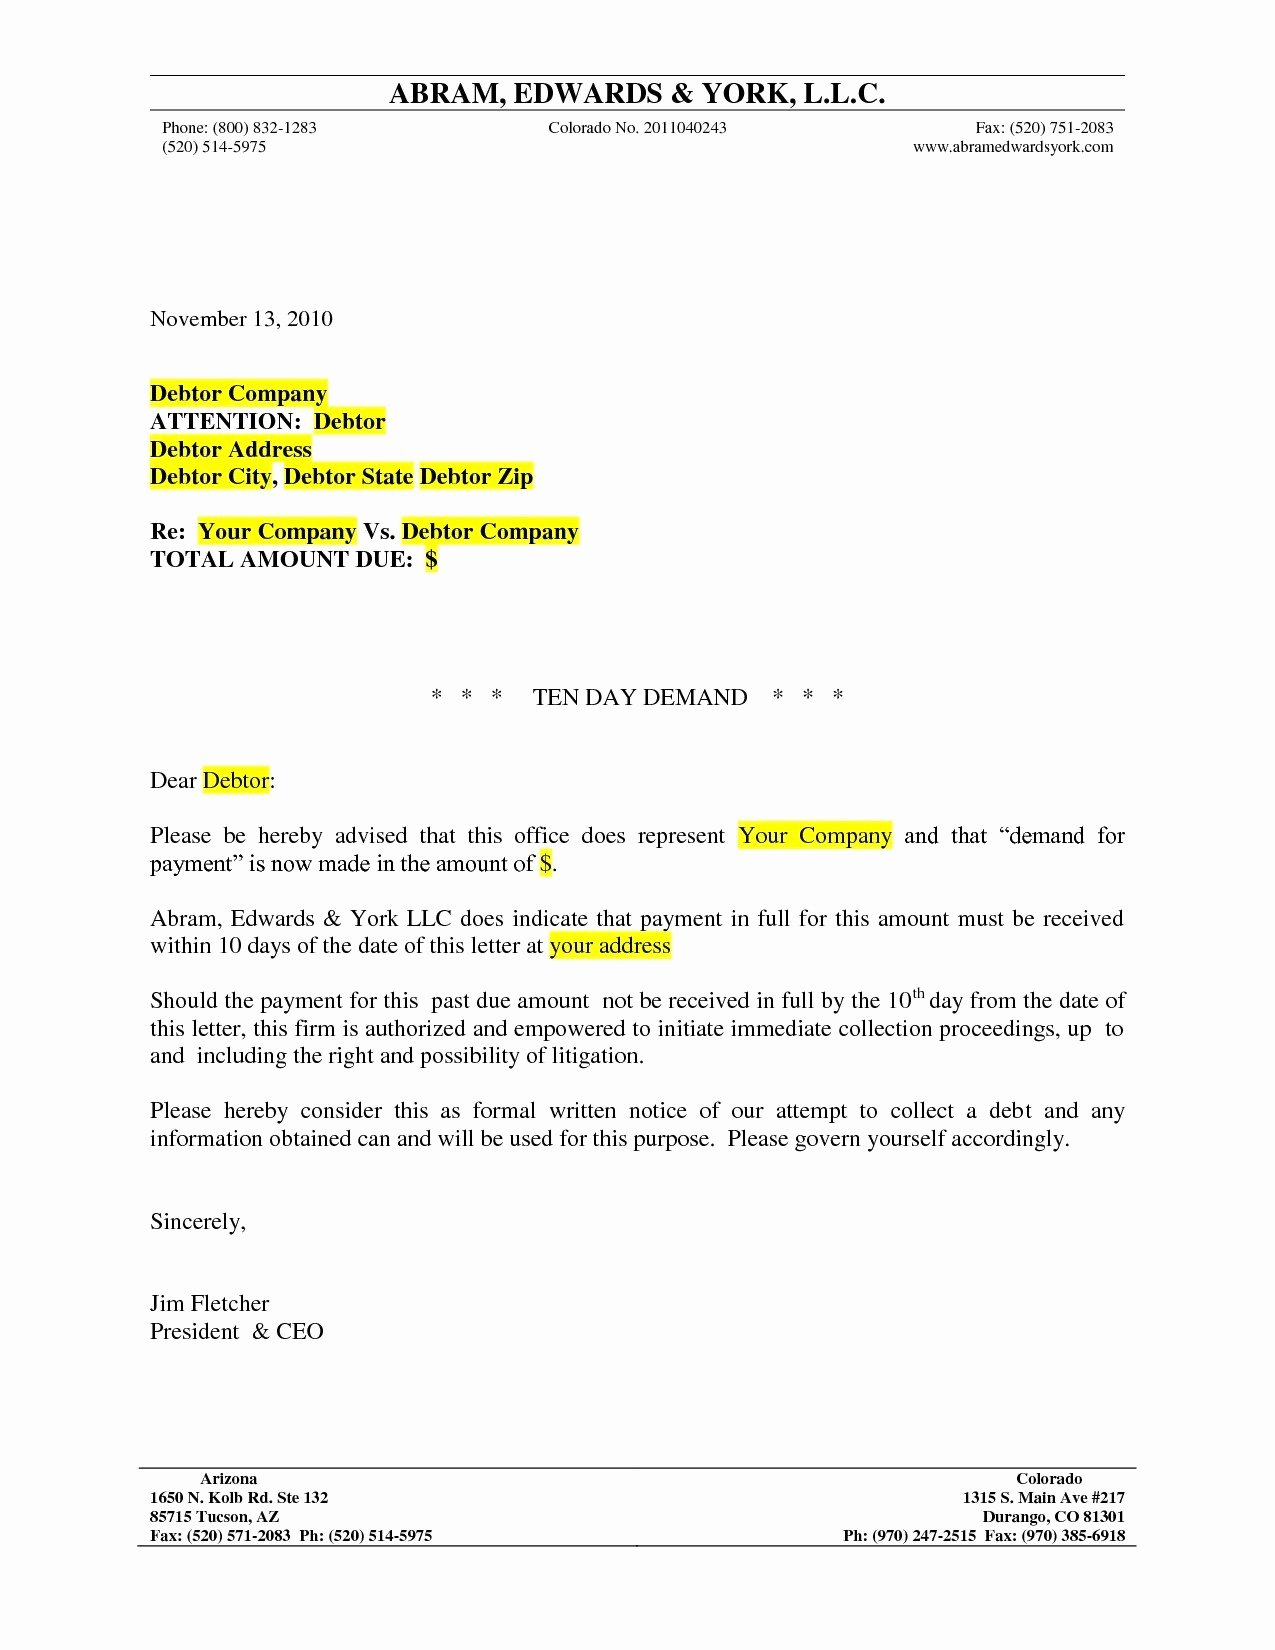 10 Day Payoff Letter Sample Awesome 10 Day Demand Letter Template Download